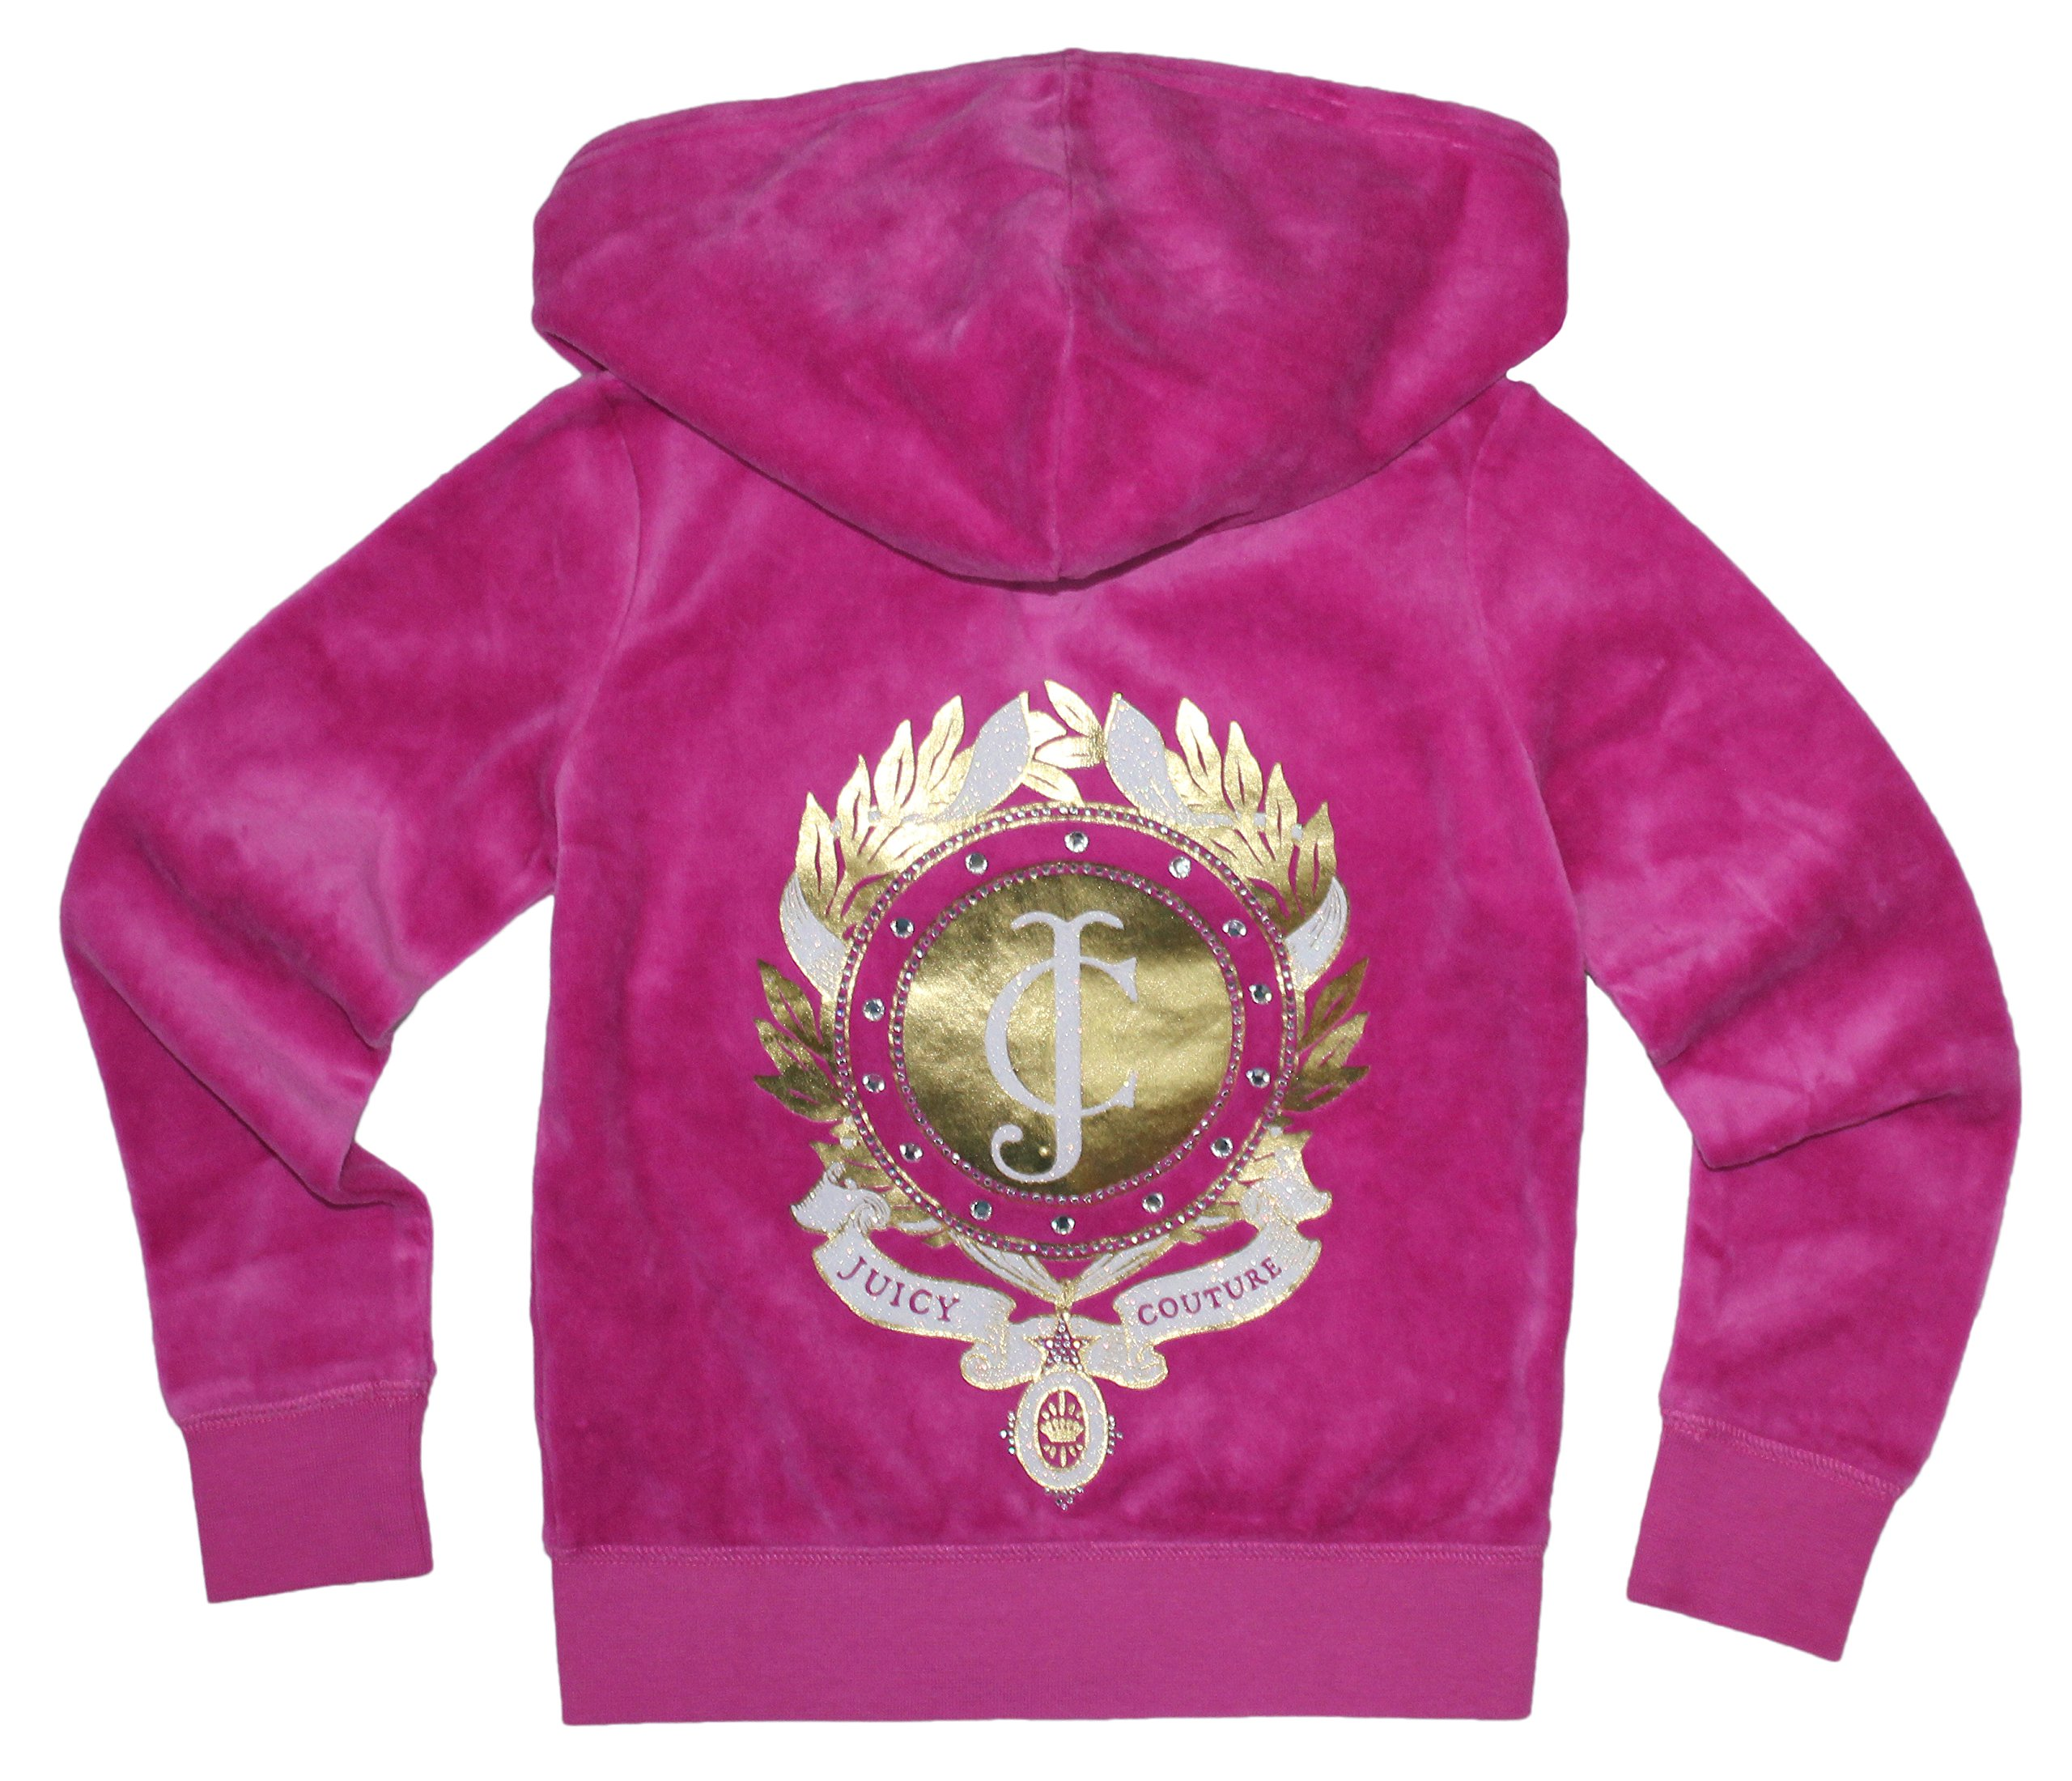 Juicy Couture Girls ''JC'' Monogram T-shirt or Velour Hoodie (Small 4-5, Pink Hoodie) by Juicy Couture